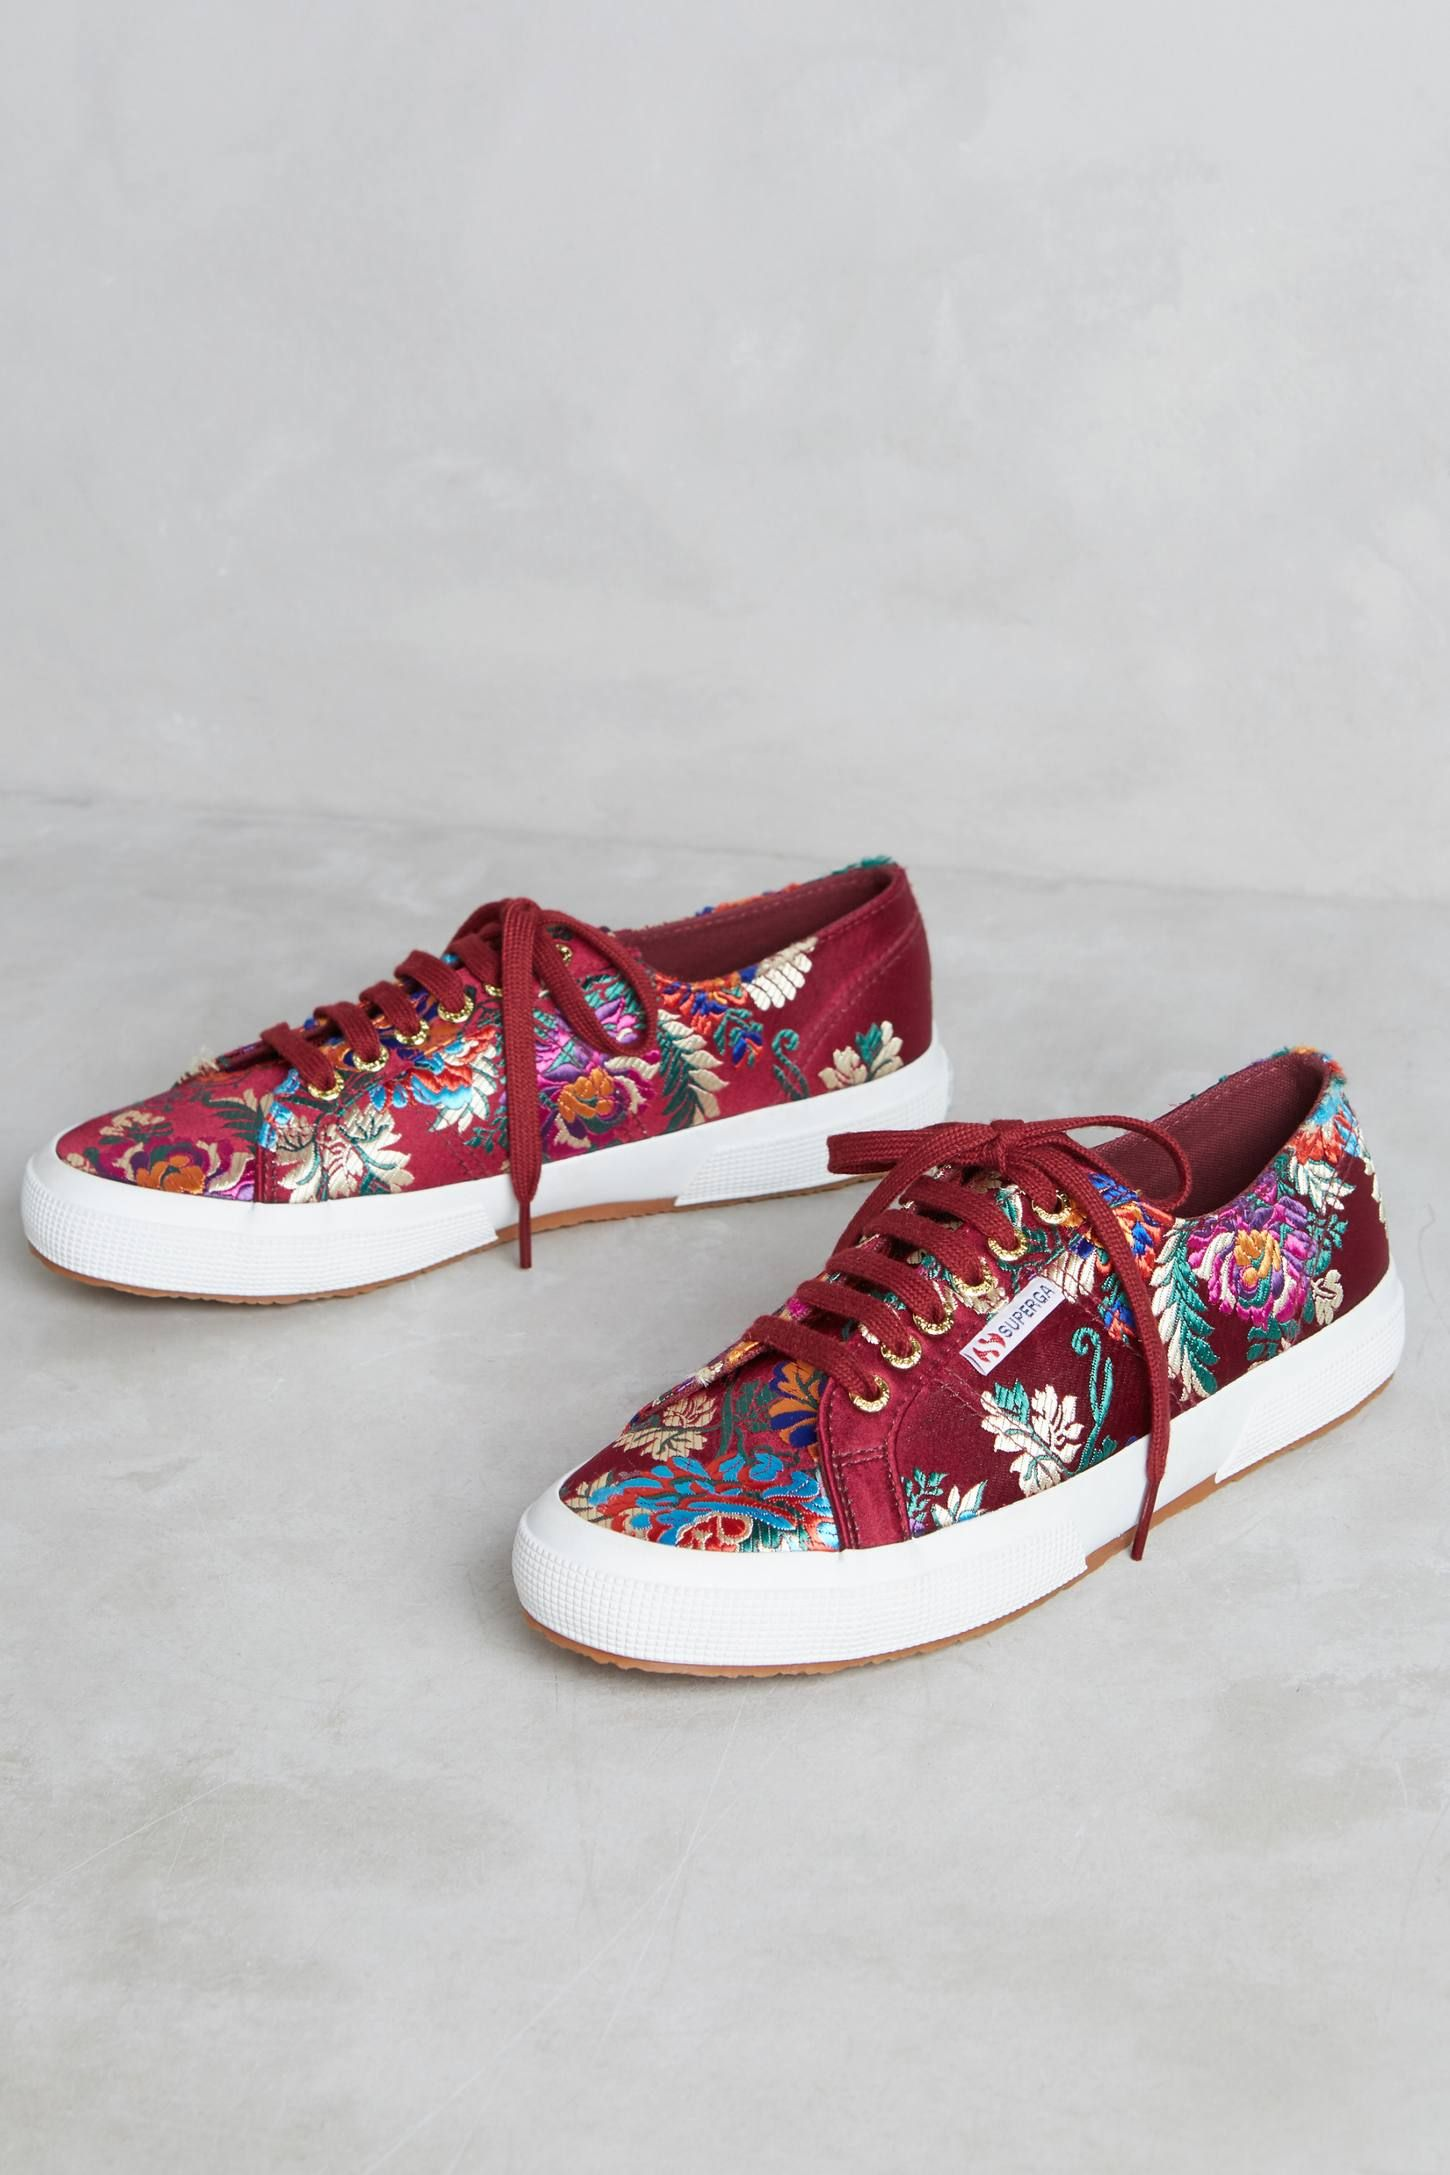 56c8bd3fb679 Slide View  1  Superga Embroidered Satin Sneakers